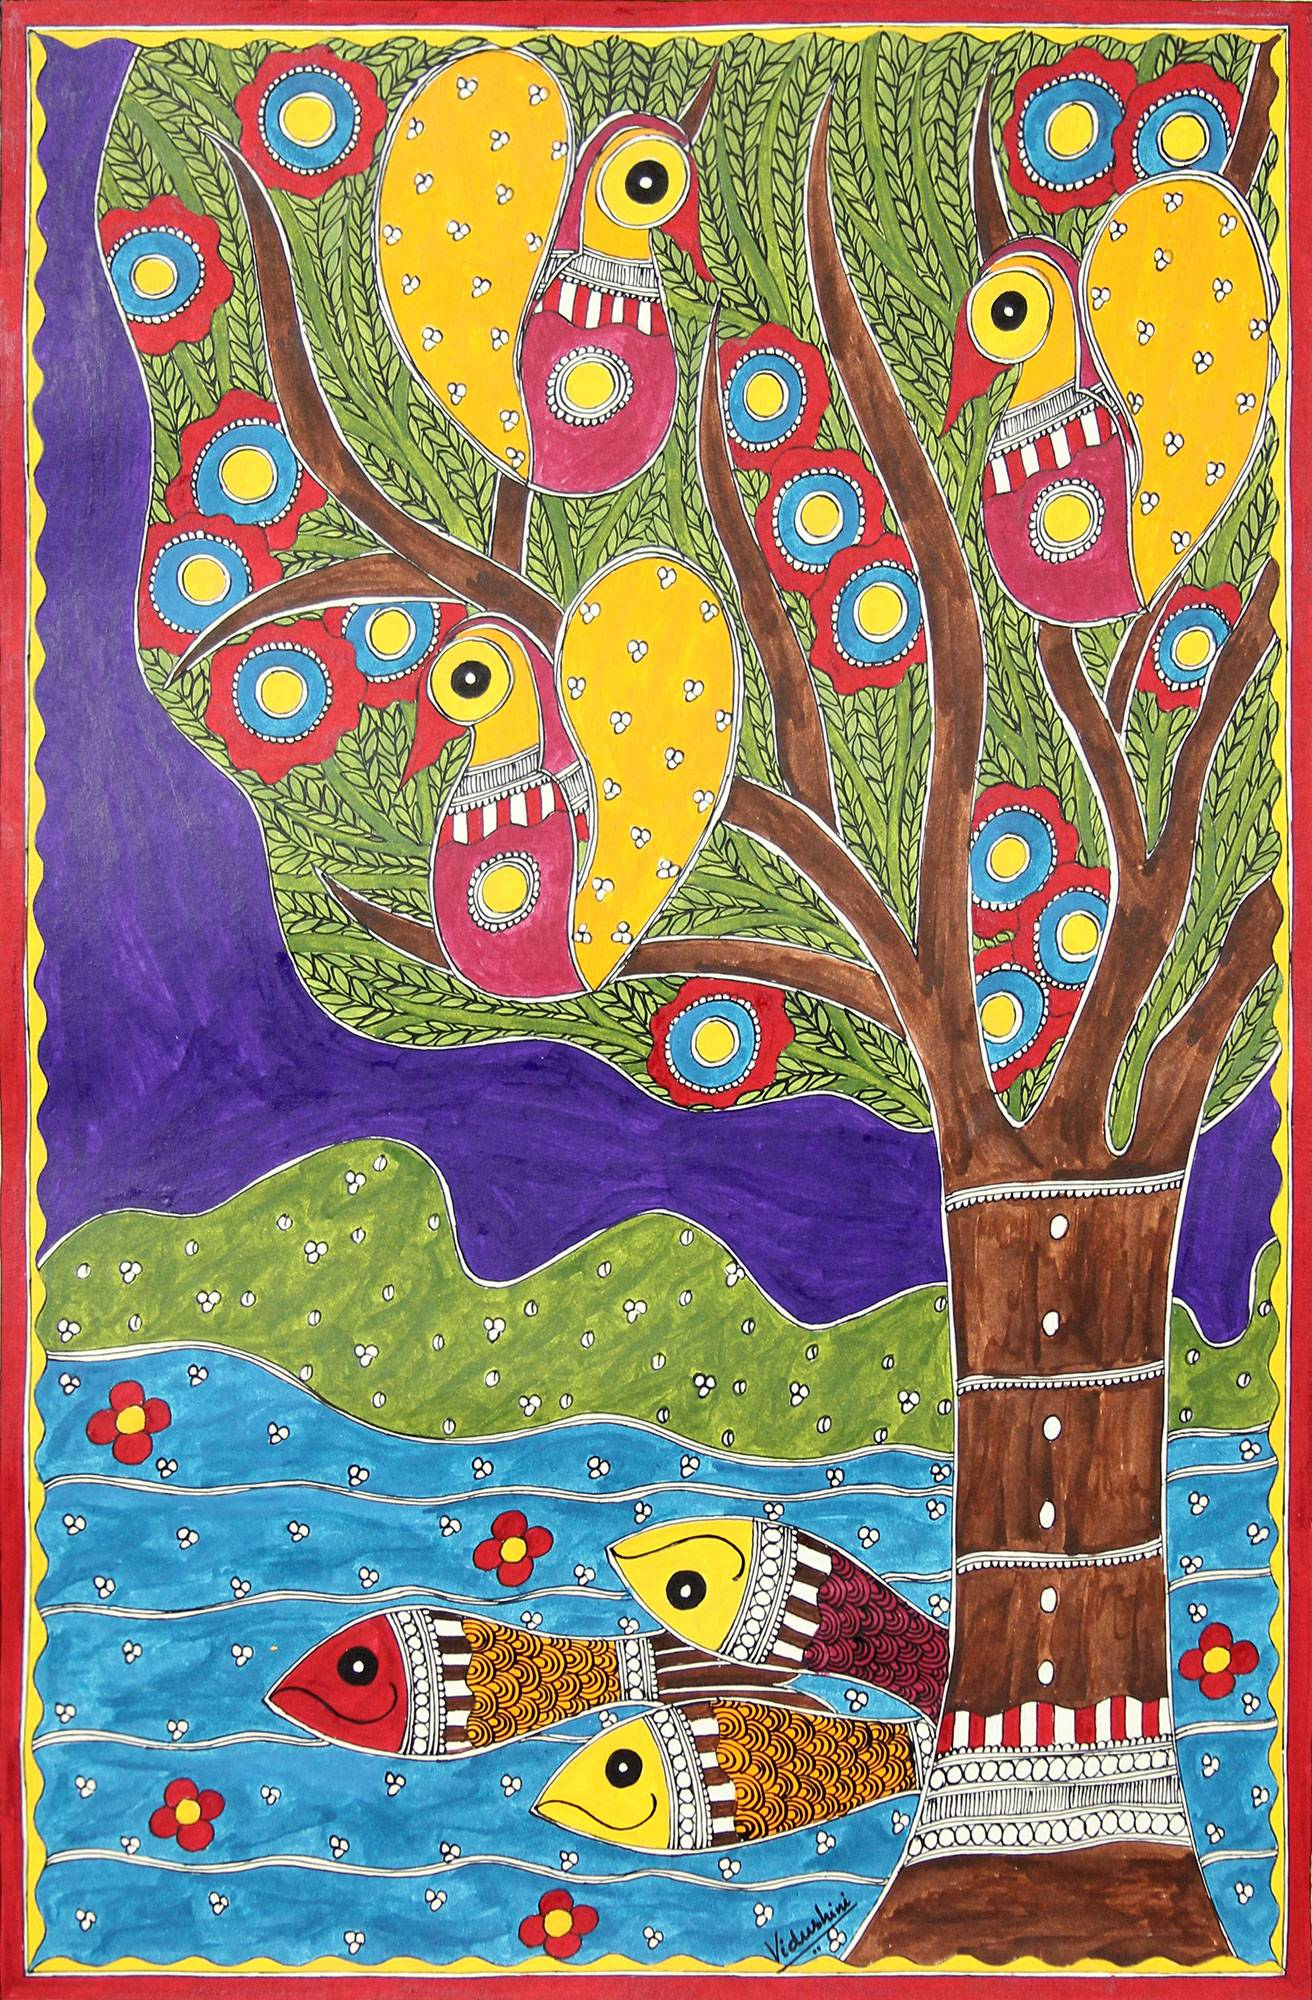 Unicef Uk Market Colorful Madhubani Folk Art Painting From Indian Artist Celebration Of Life